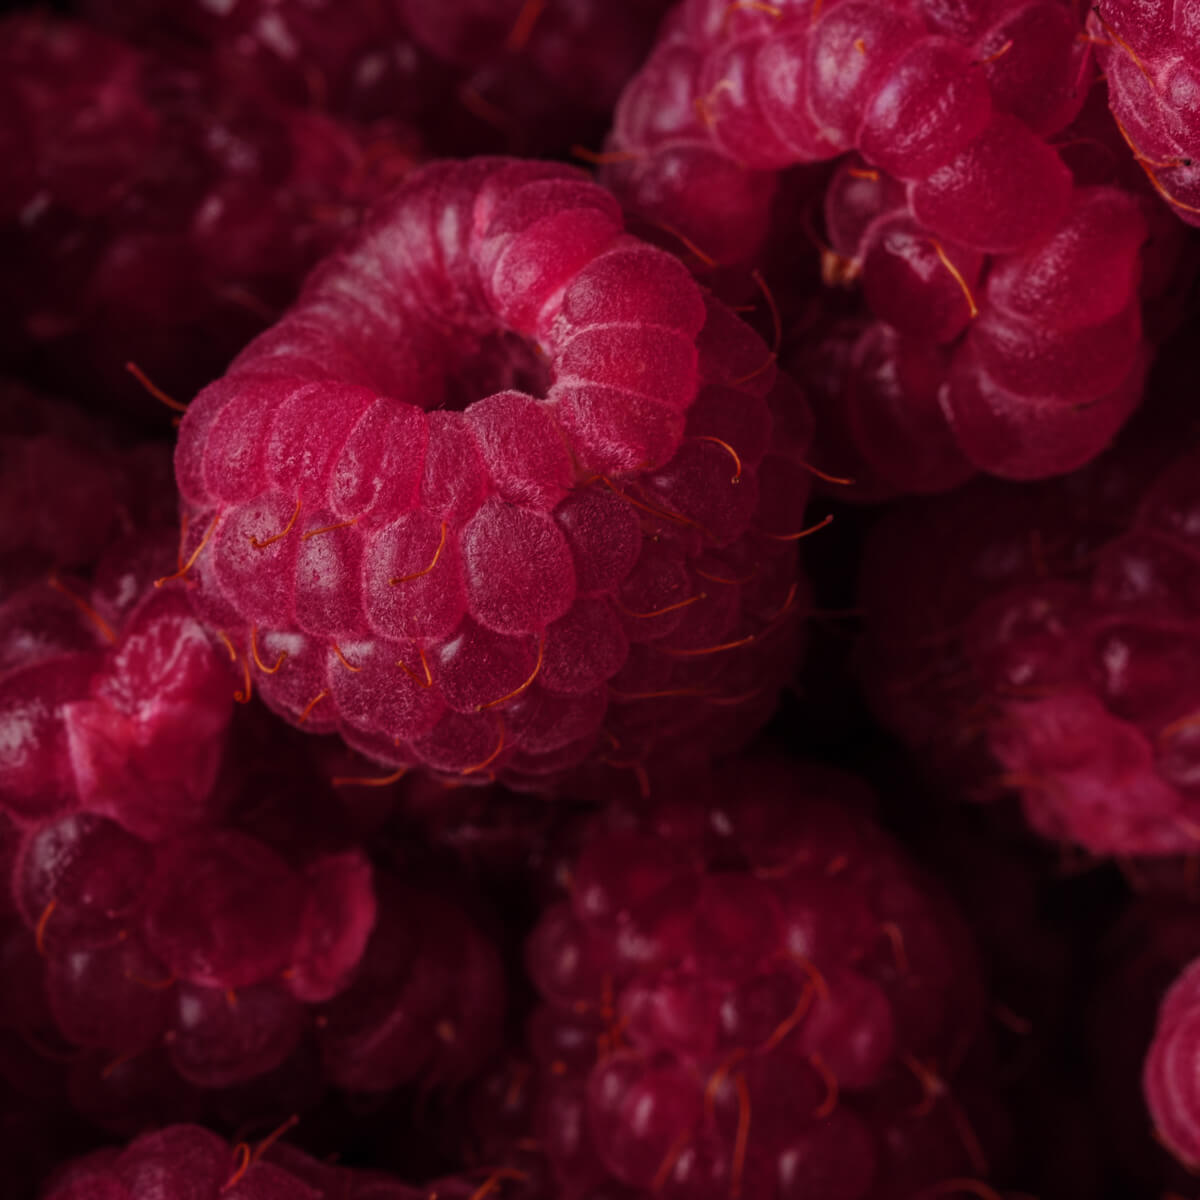 Fresh red fruits guarantee the perfect aroma of EFFEN raspberry flavored vodka.